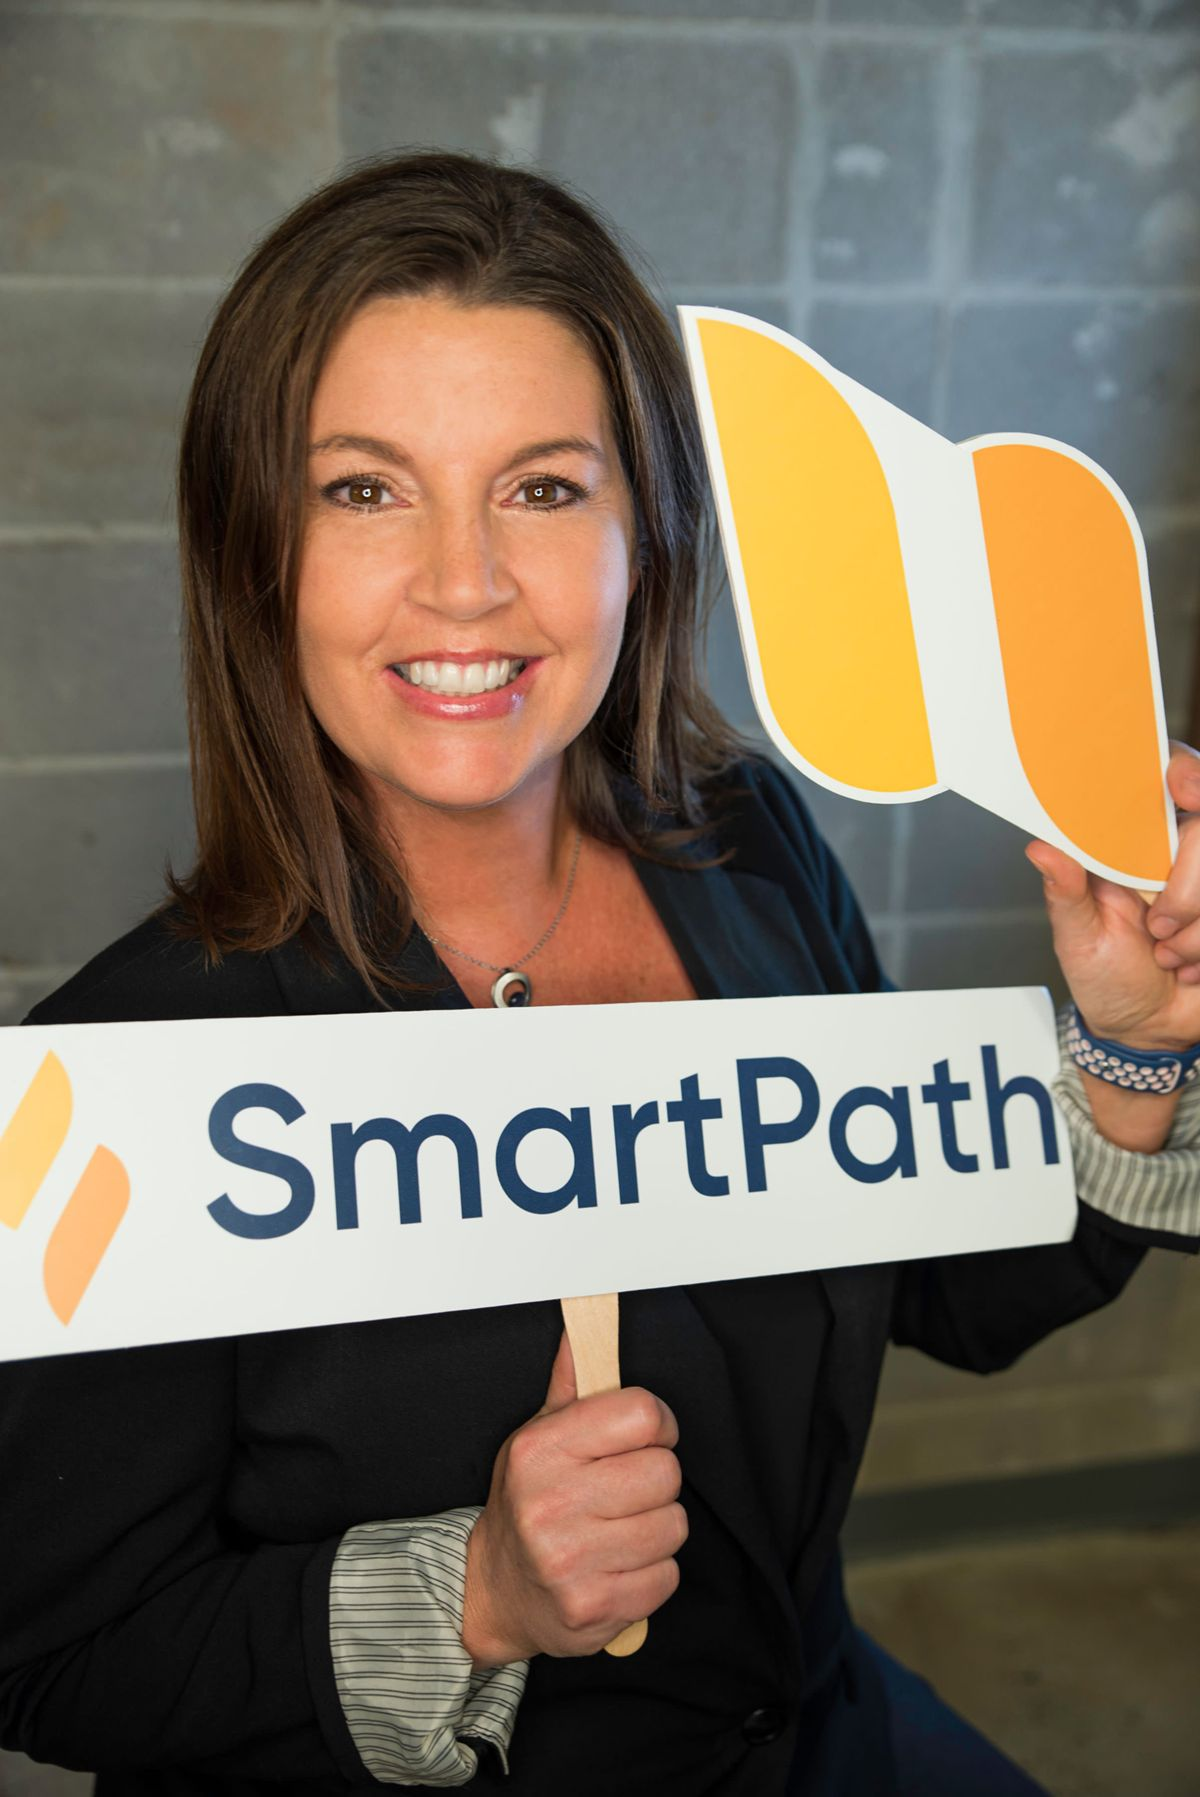 SmartPath Welcomes Christy DeFrain to Leadership Team as Vice President of Sales & Business Development, SmartPath